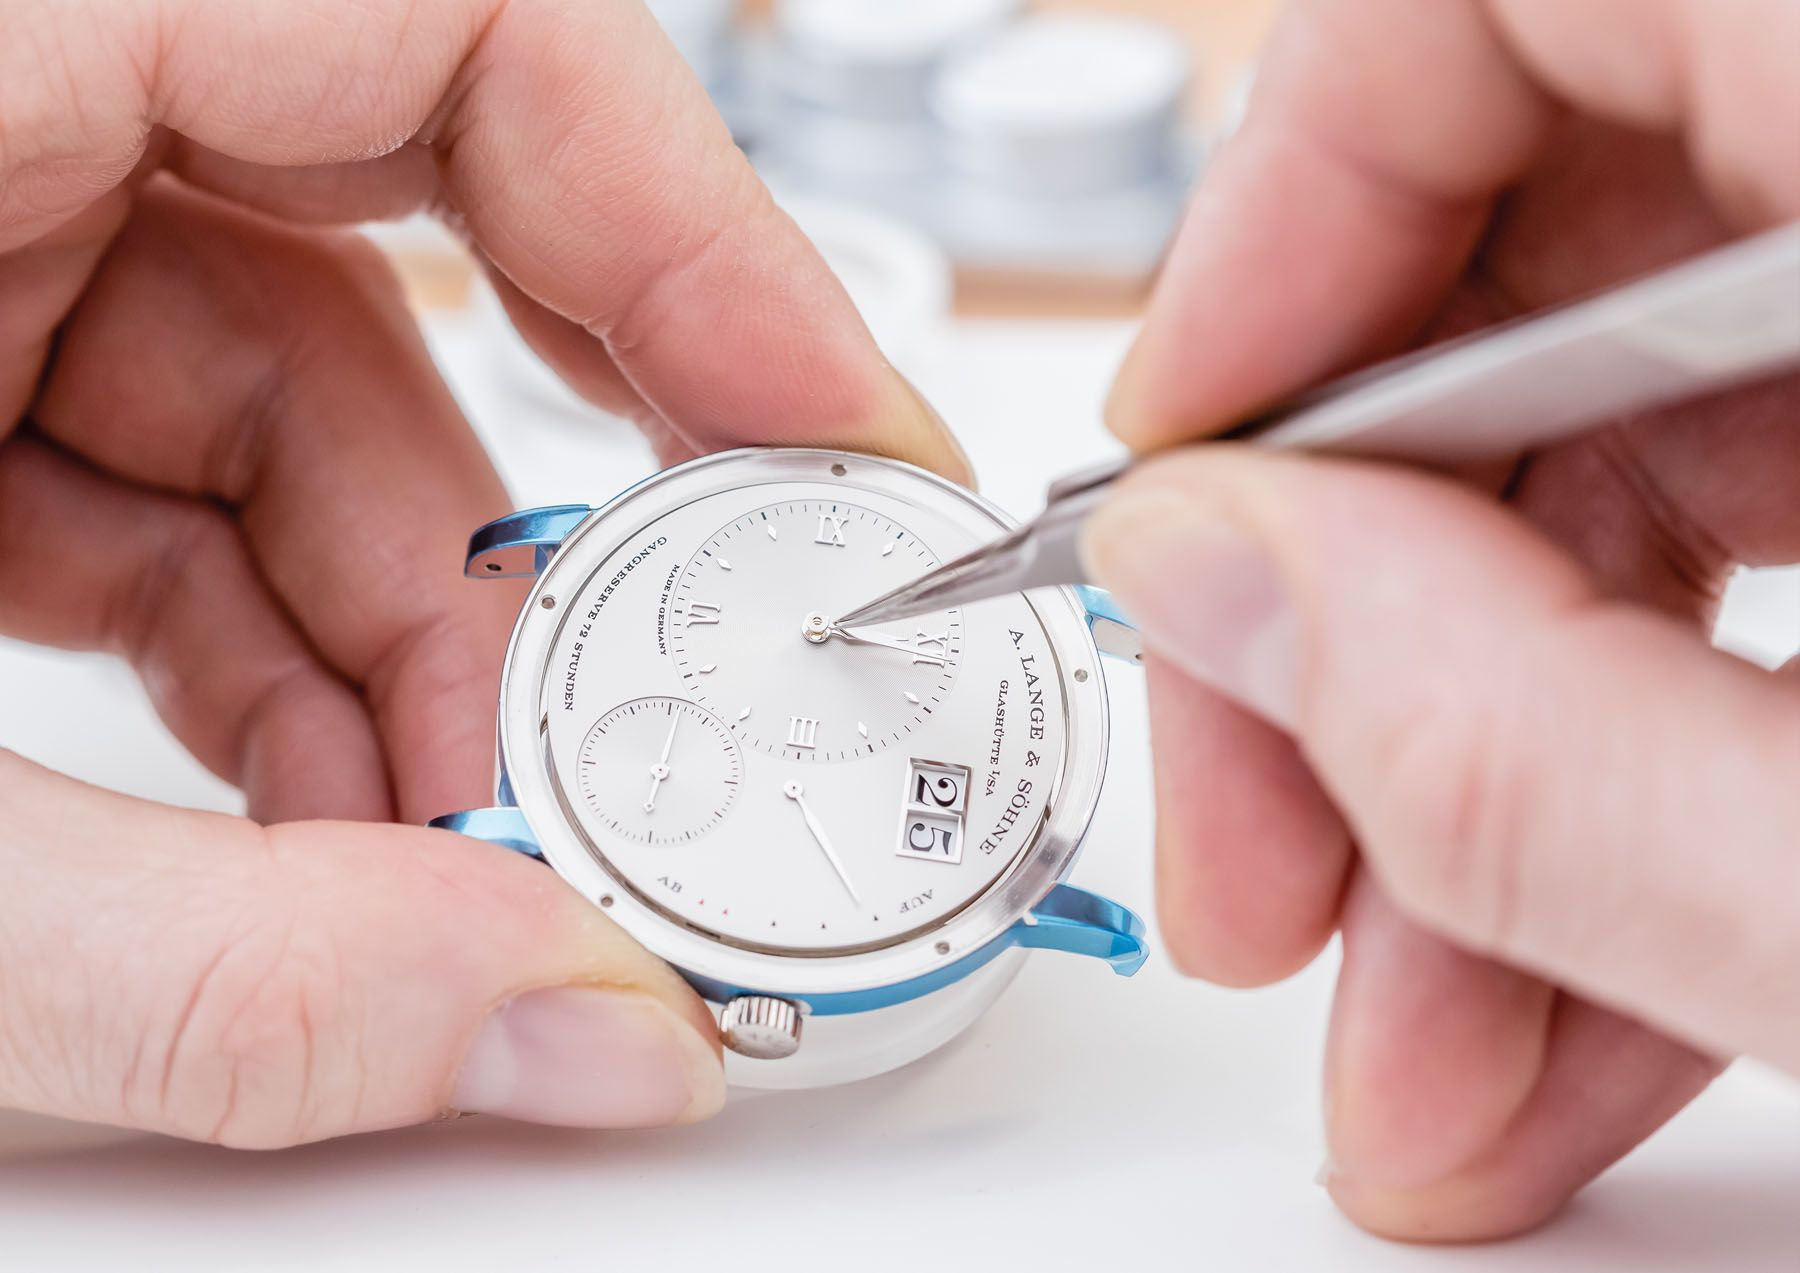 Tracing A. Lange & Söhne's Fascinating History As A Watchmaker